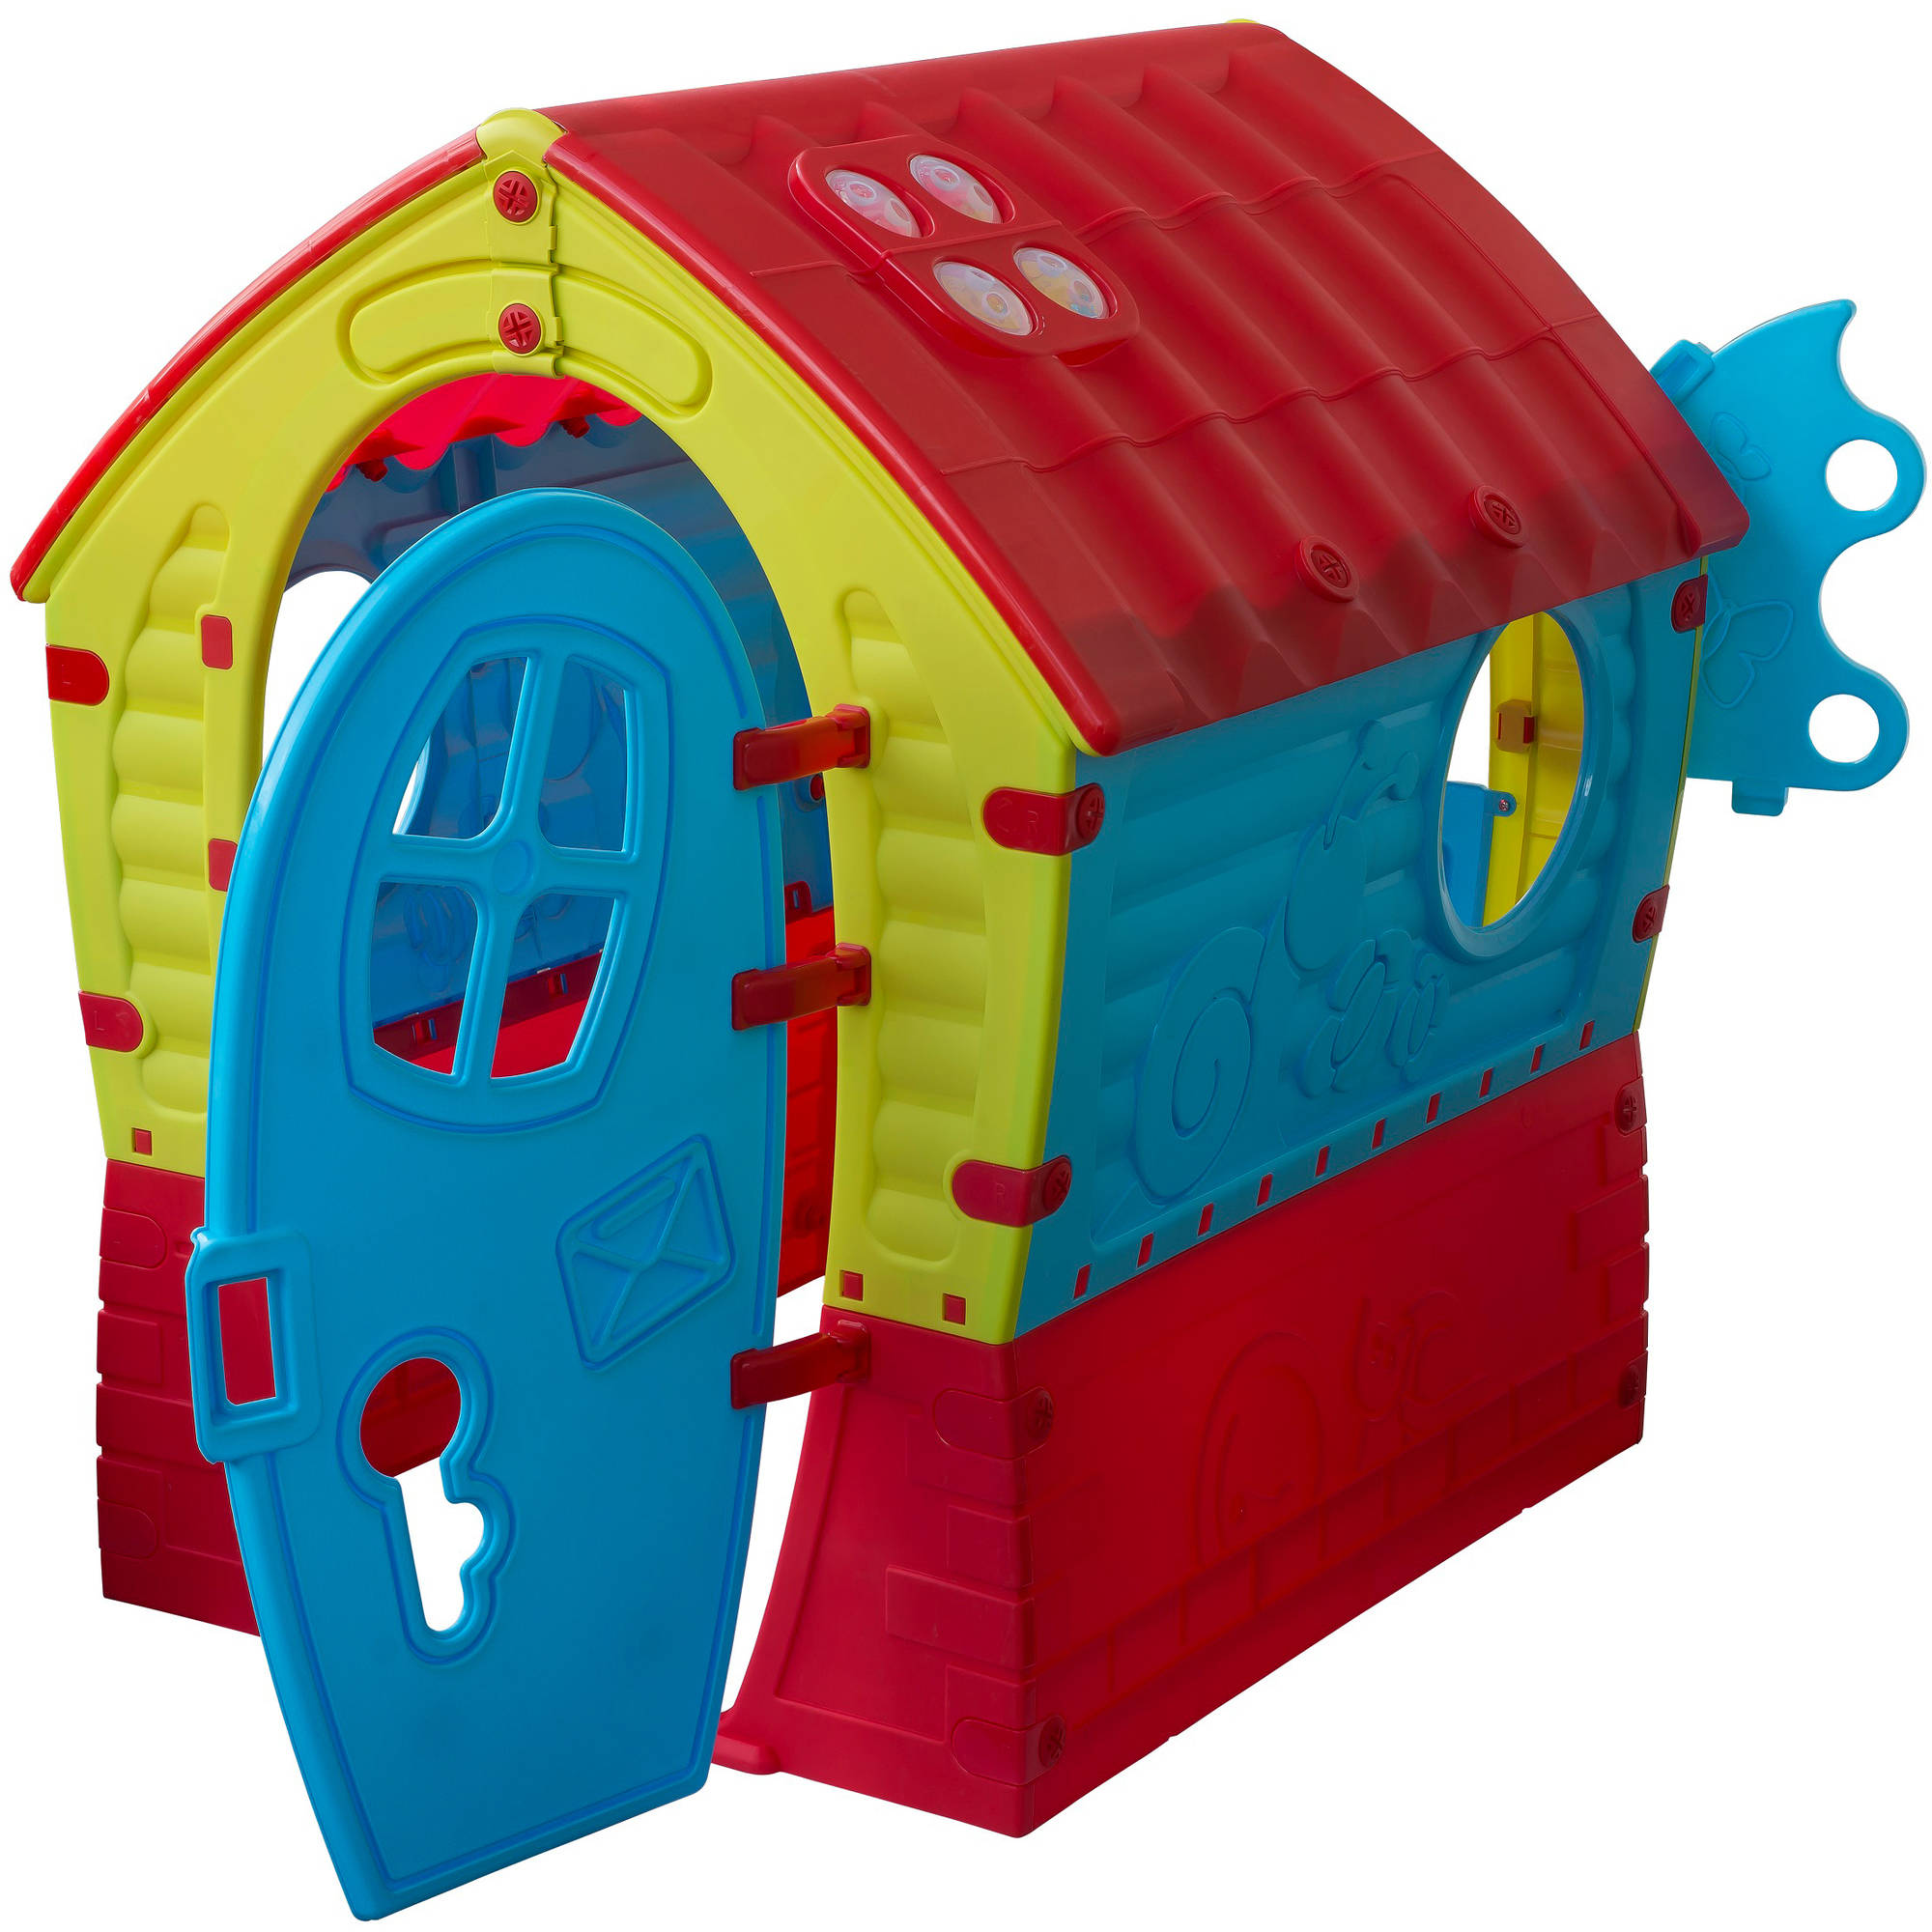 Pal Play Children's Dream House Indoor/Outdoor Playhouse, Red/Blue/Green